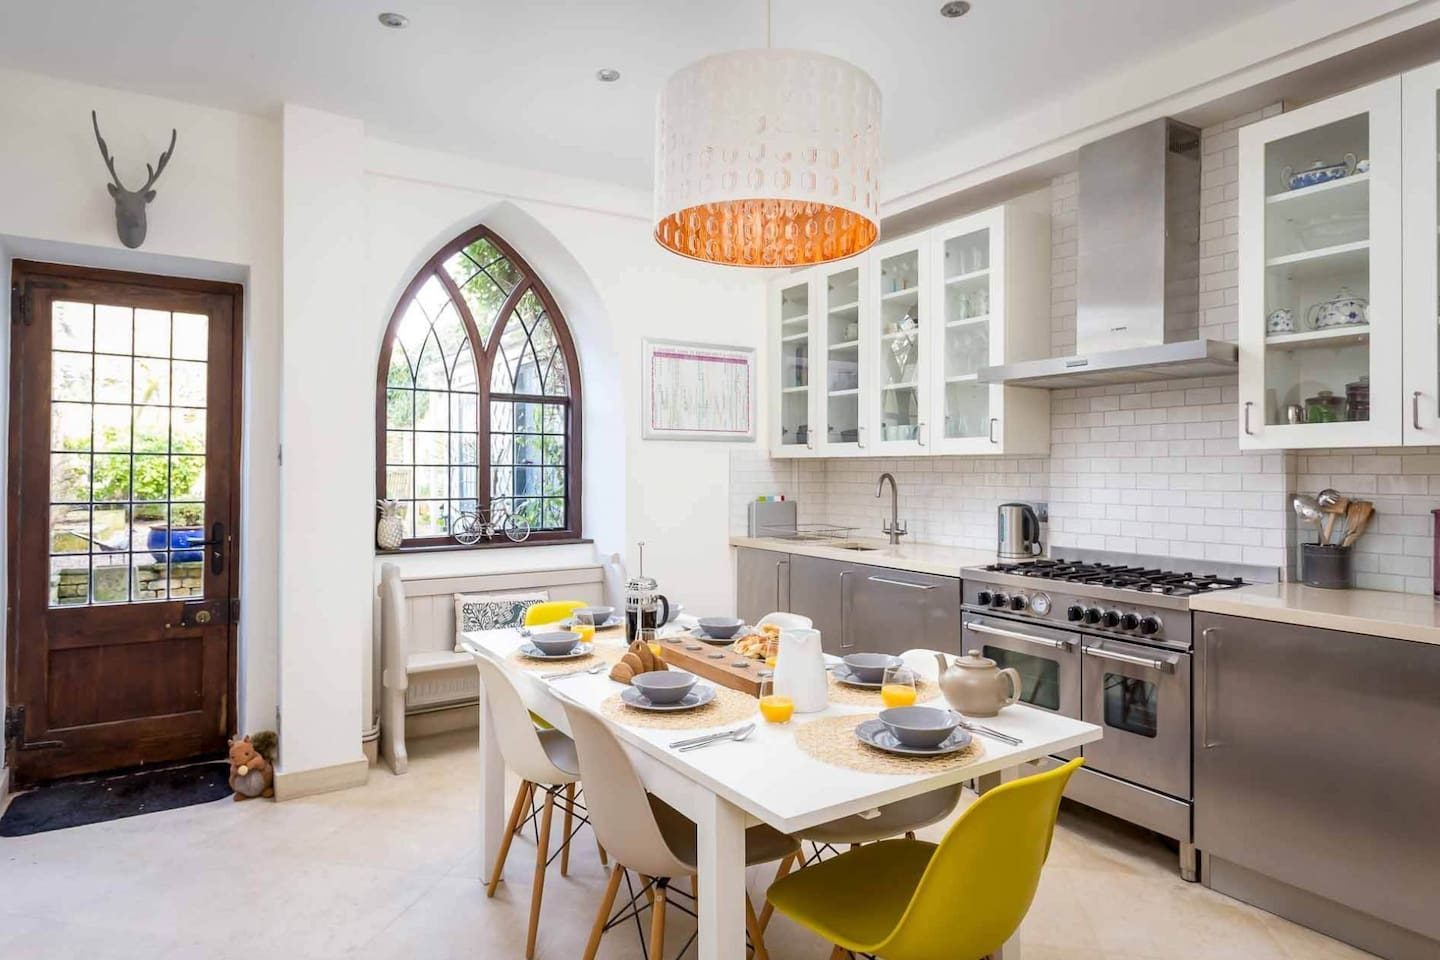 Stunning, contemporary kitchen and dining room